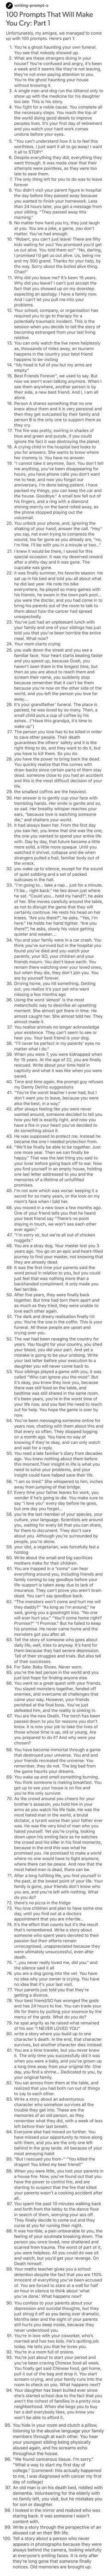 100 Prompts That Will Make You Cry